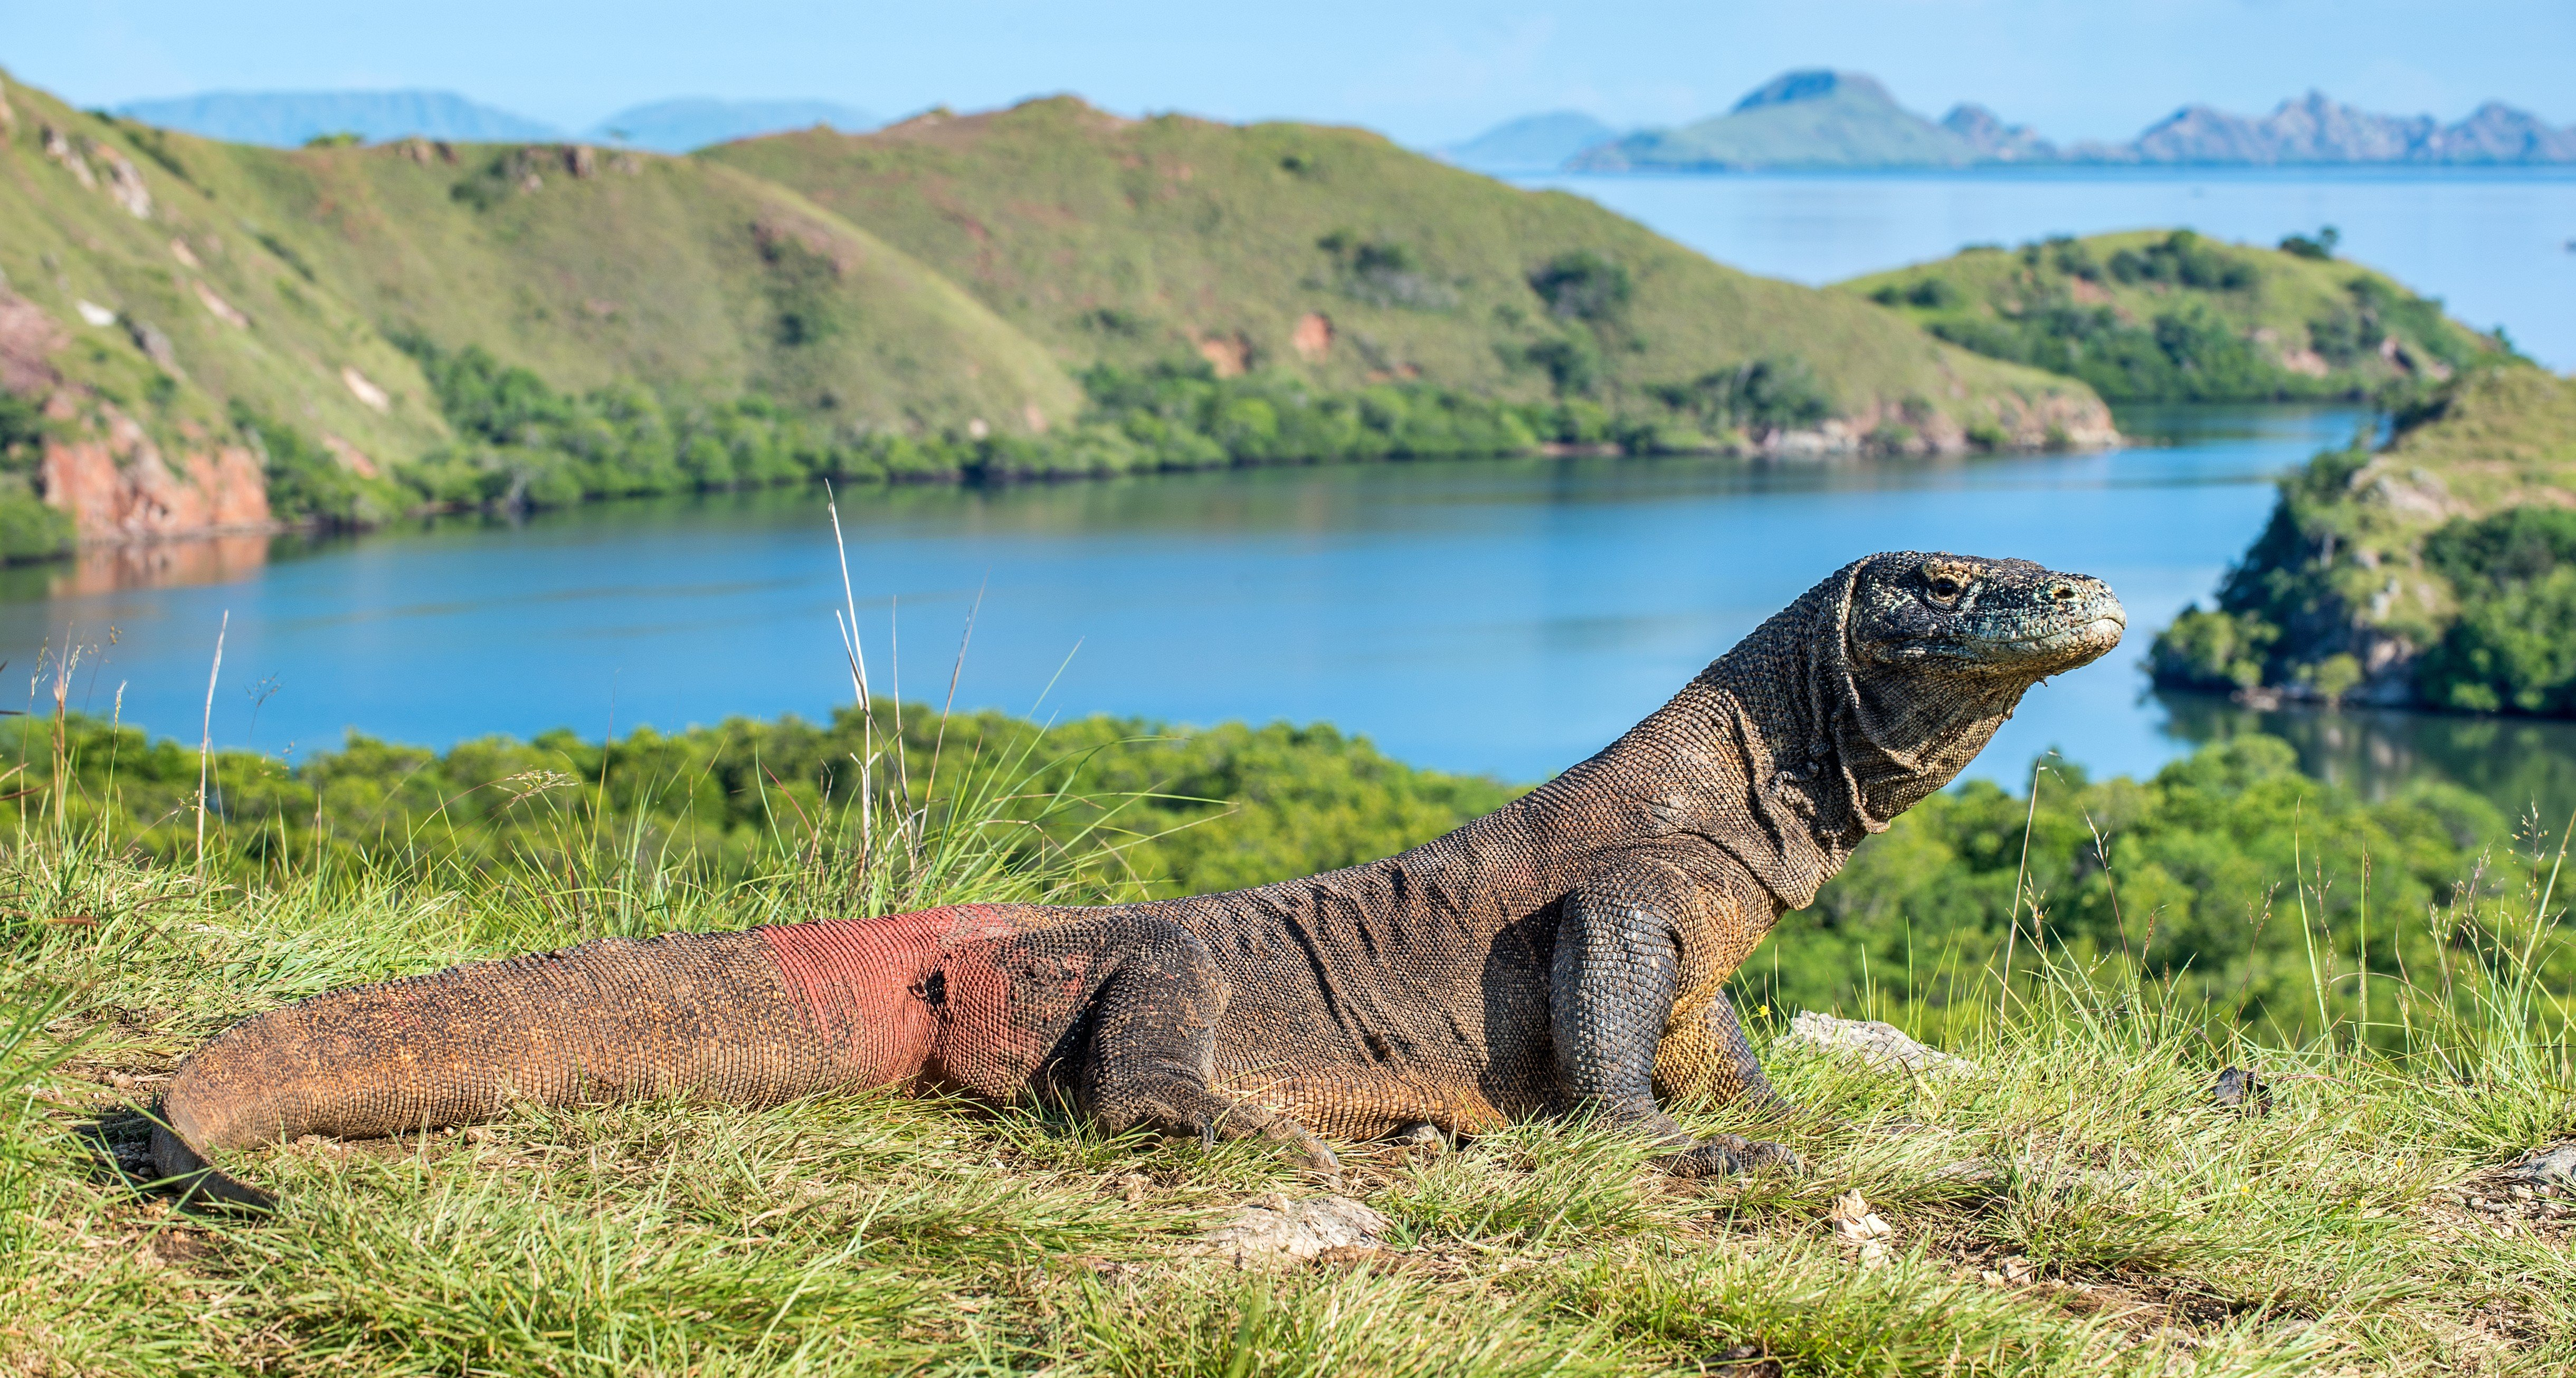 Komodo National Park is staying open, but at US$1,000 to visit its dragons,  will anyone go? | South China Morning Post